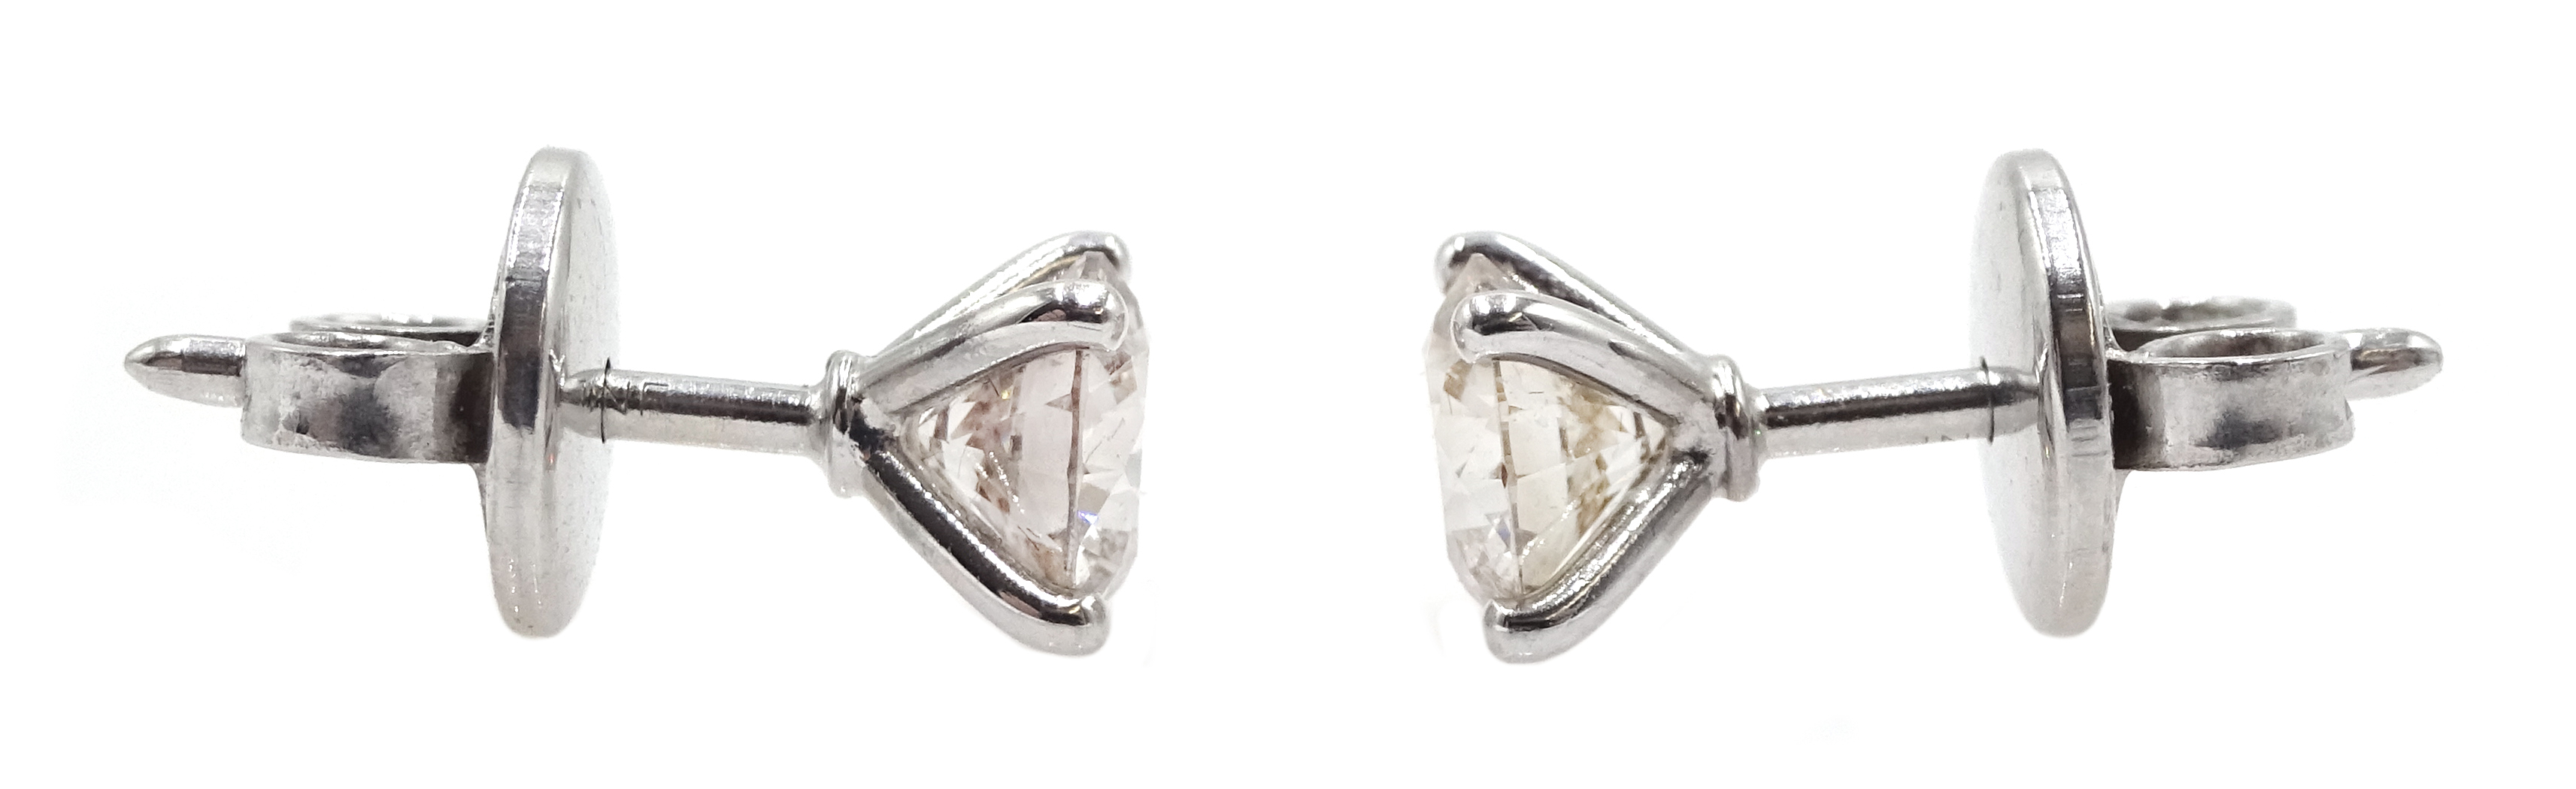 18ct white gold four claw solitaire diamond stud earrings, diamond total weight approx 1.00 carat, - Image 3 of 3